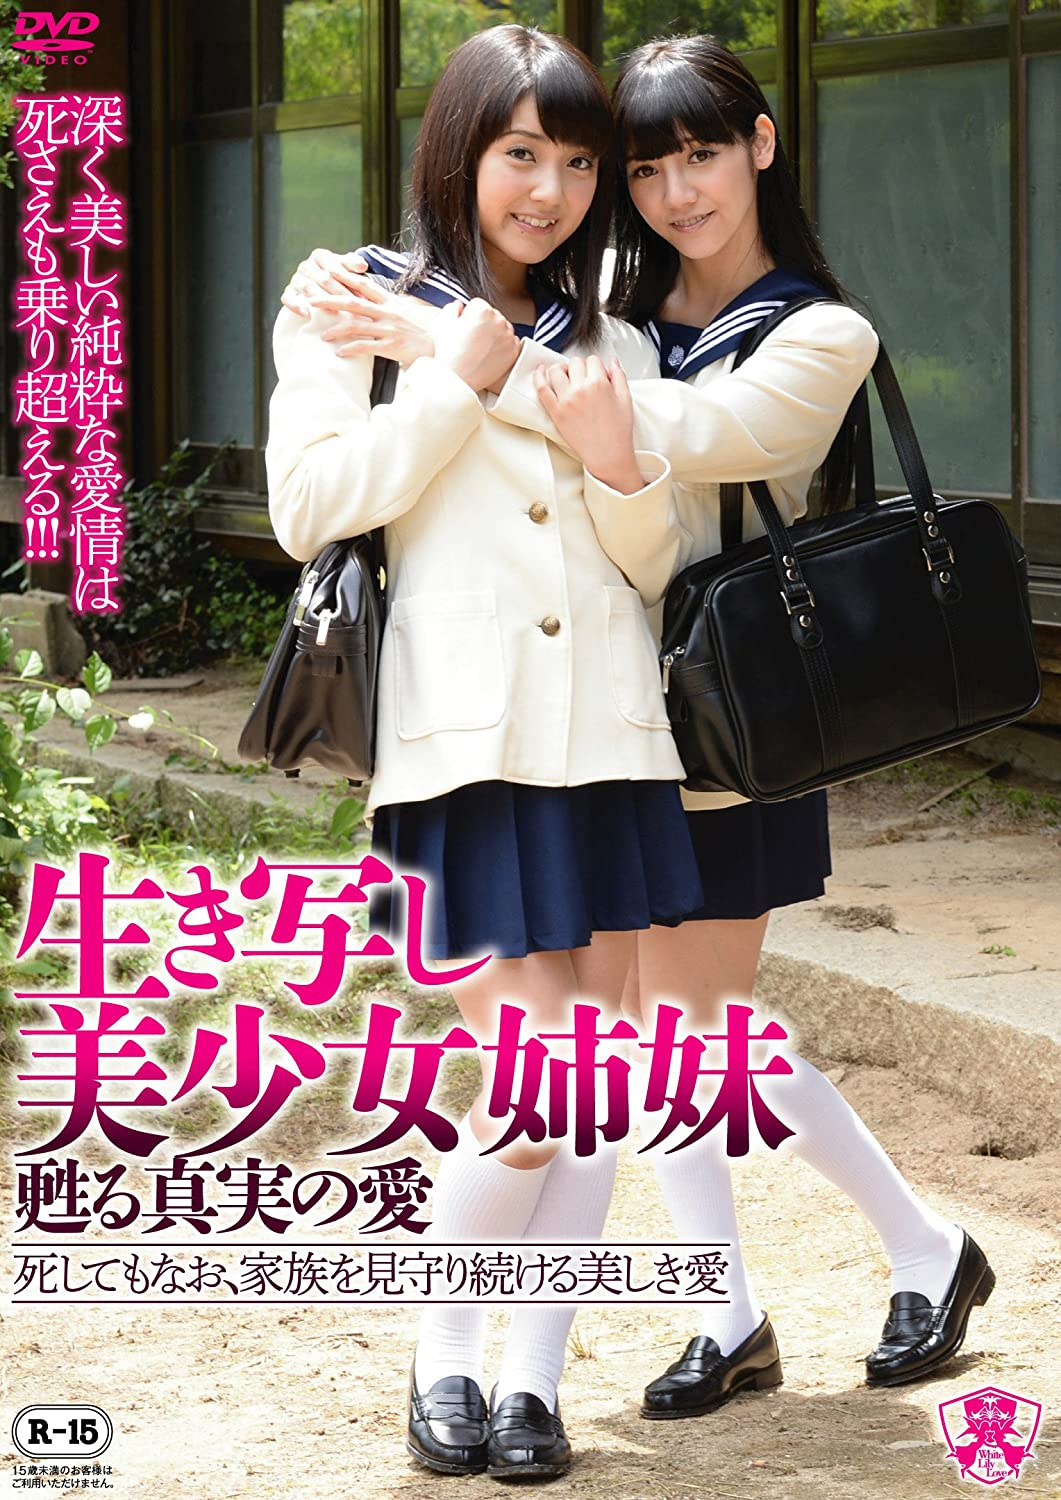 [VRXS-140] (English subbed) Identical Beautiful Sisters Revived Lesbians - Dead But Their Beautiful Love Continues to Protect Their Family -